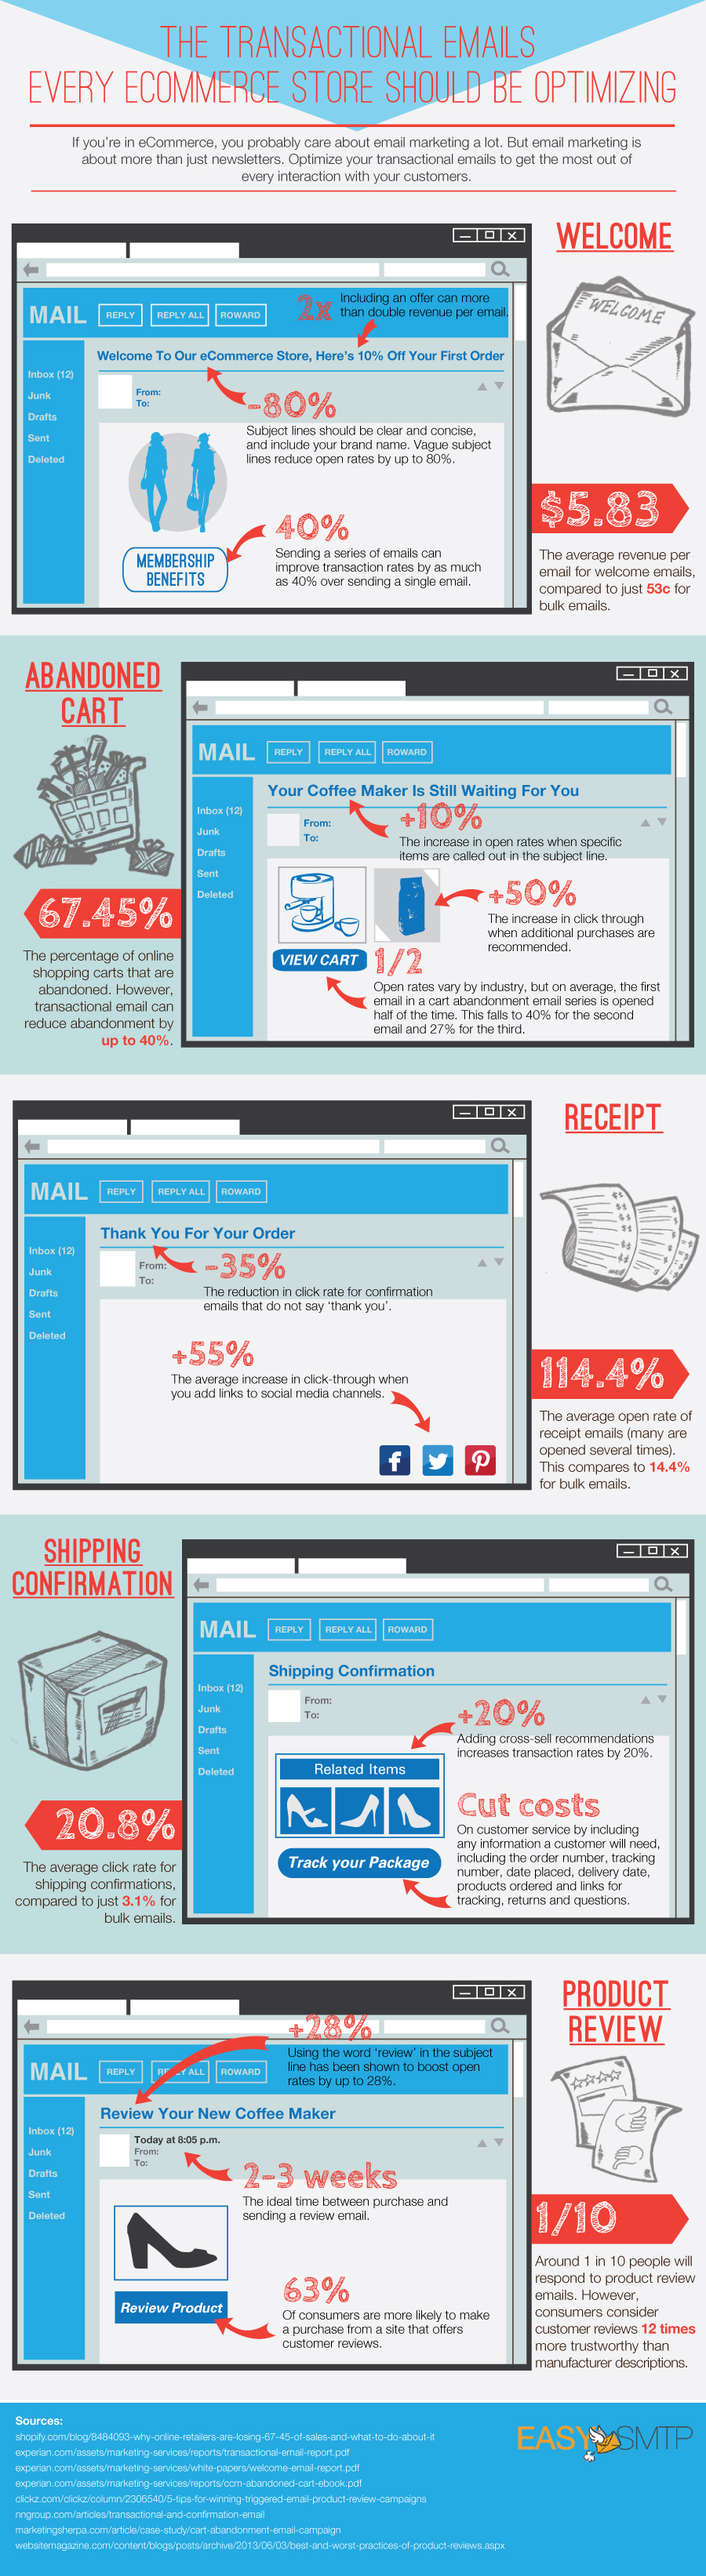 Transactional Email Best Practices for Ecommerce Business